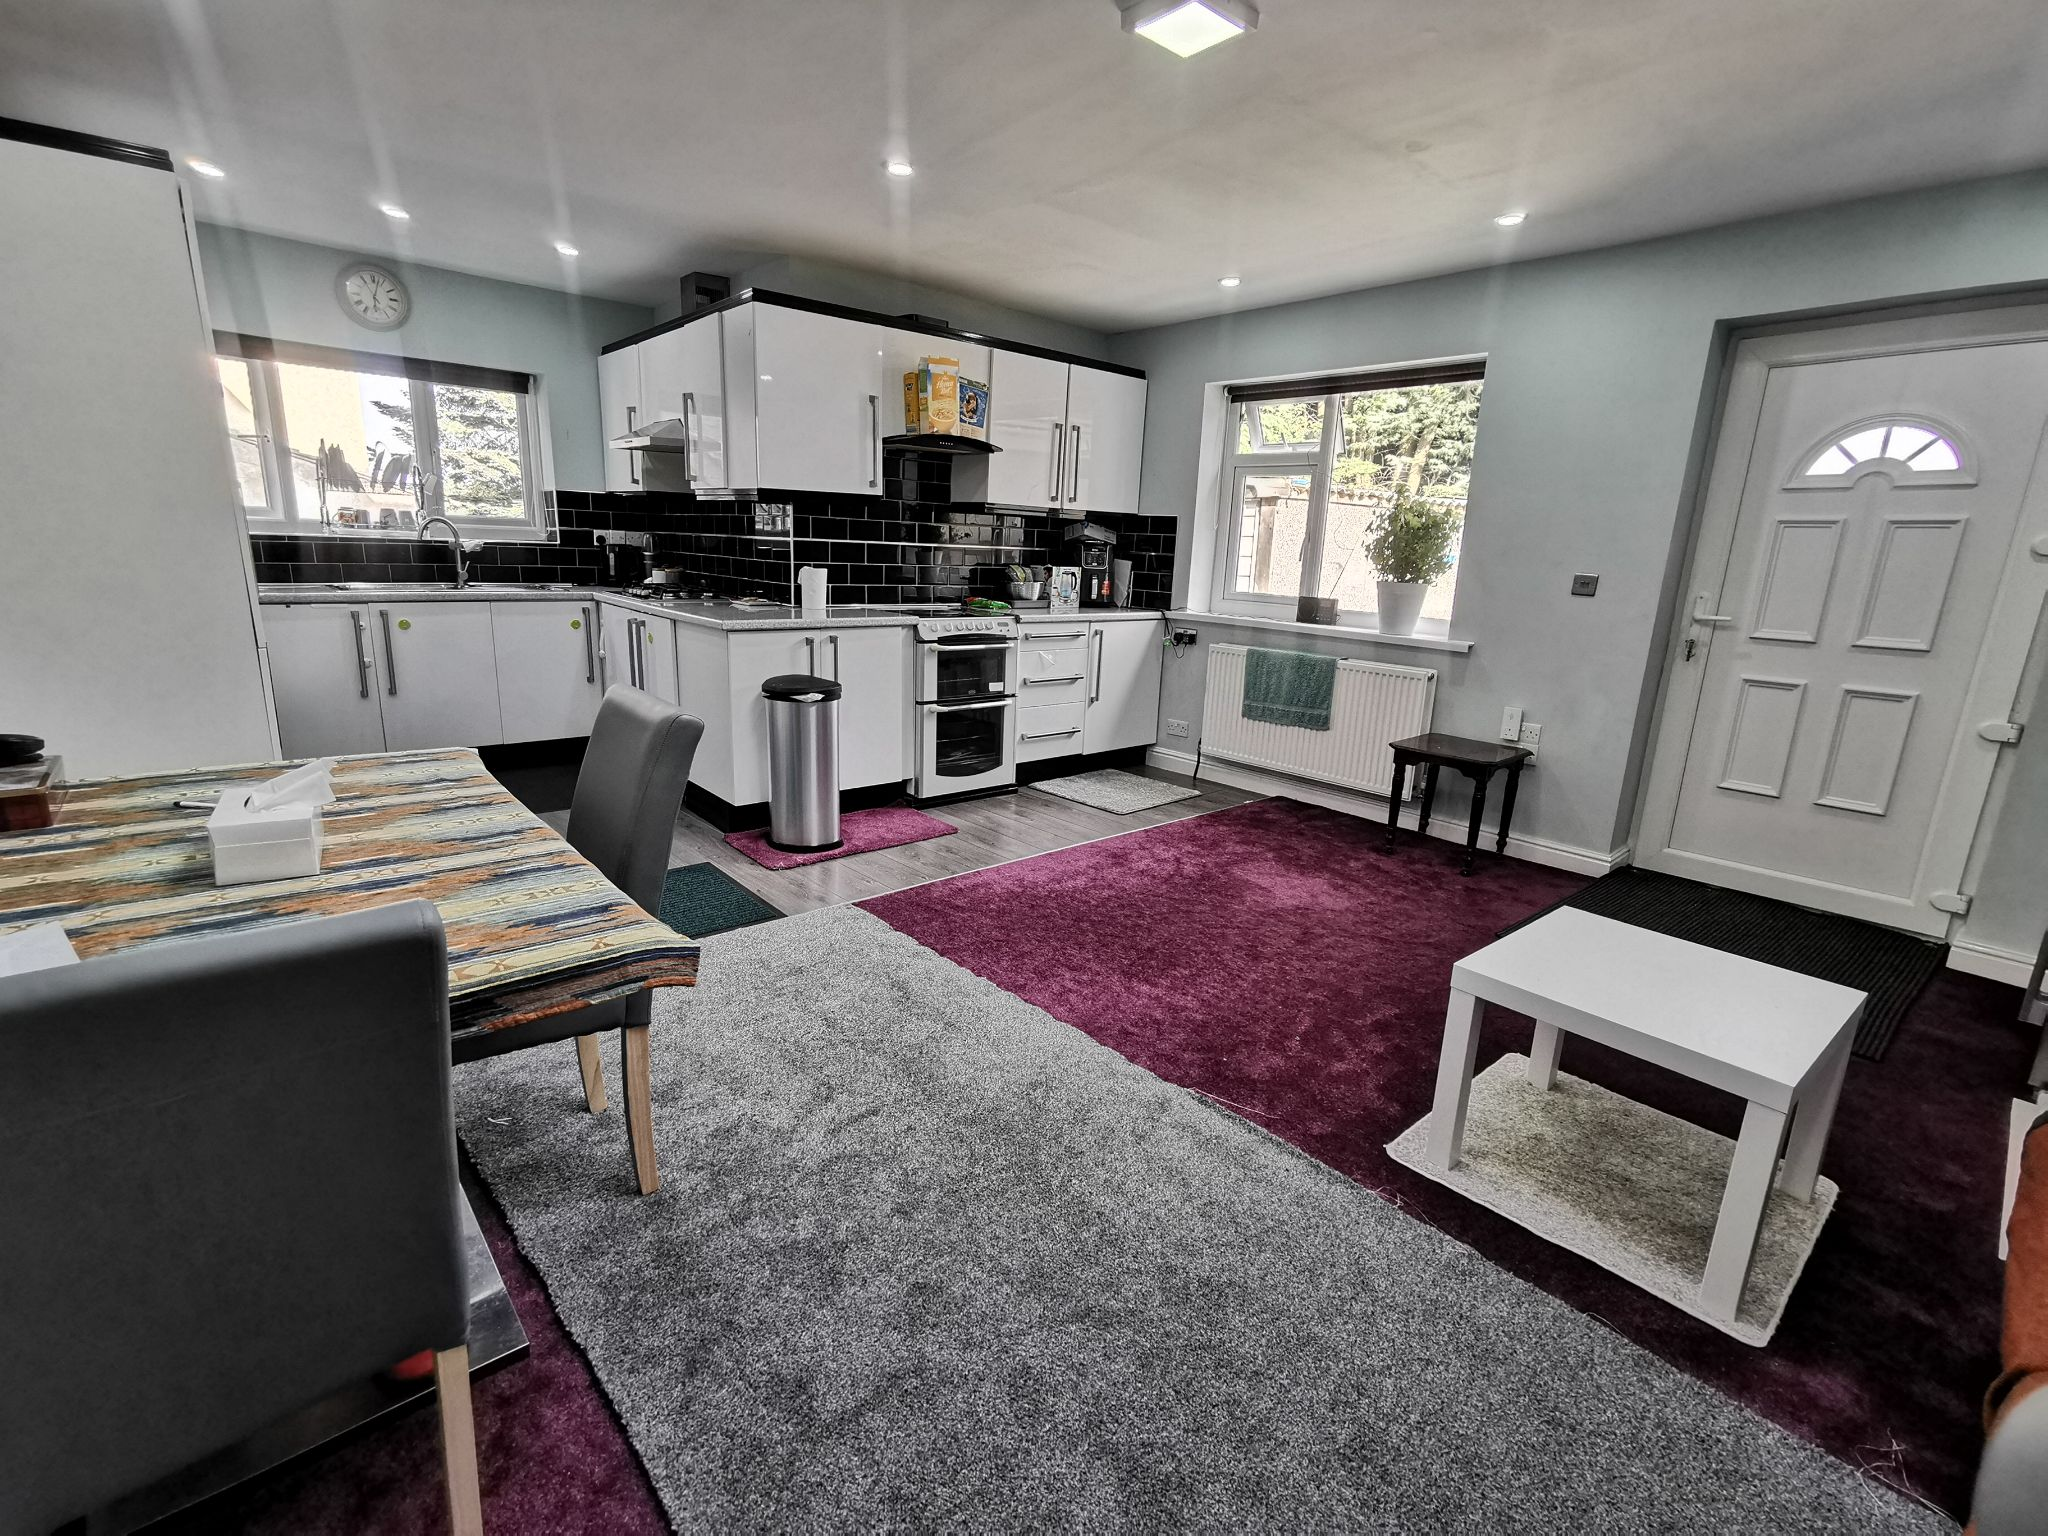 4 bedroom semi-detached house SSTC in Bradford - Photograph 8.